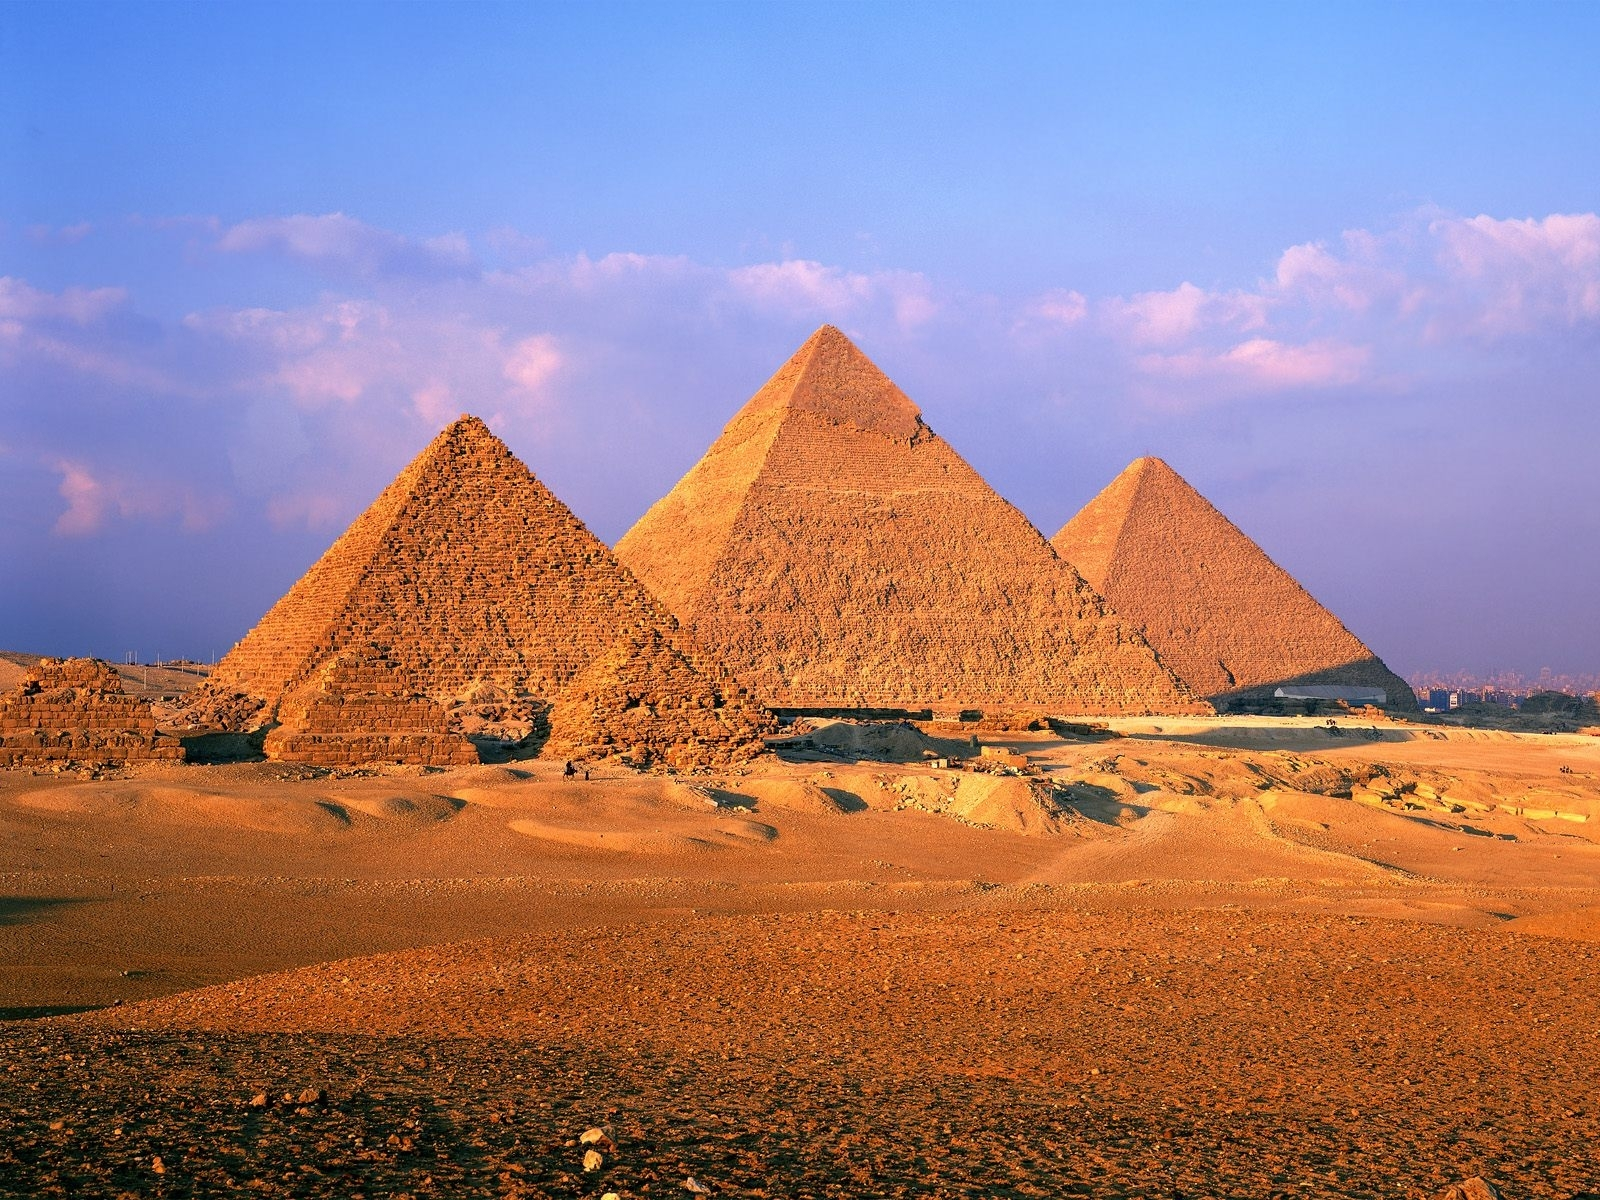 pyramids of giza egypt wallpapers | hd wallpapers | id #6072